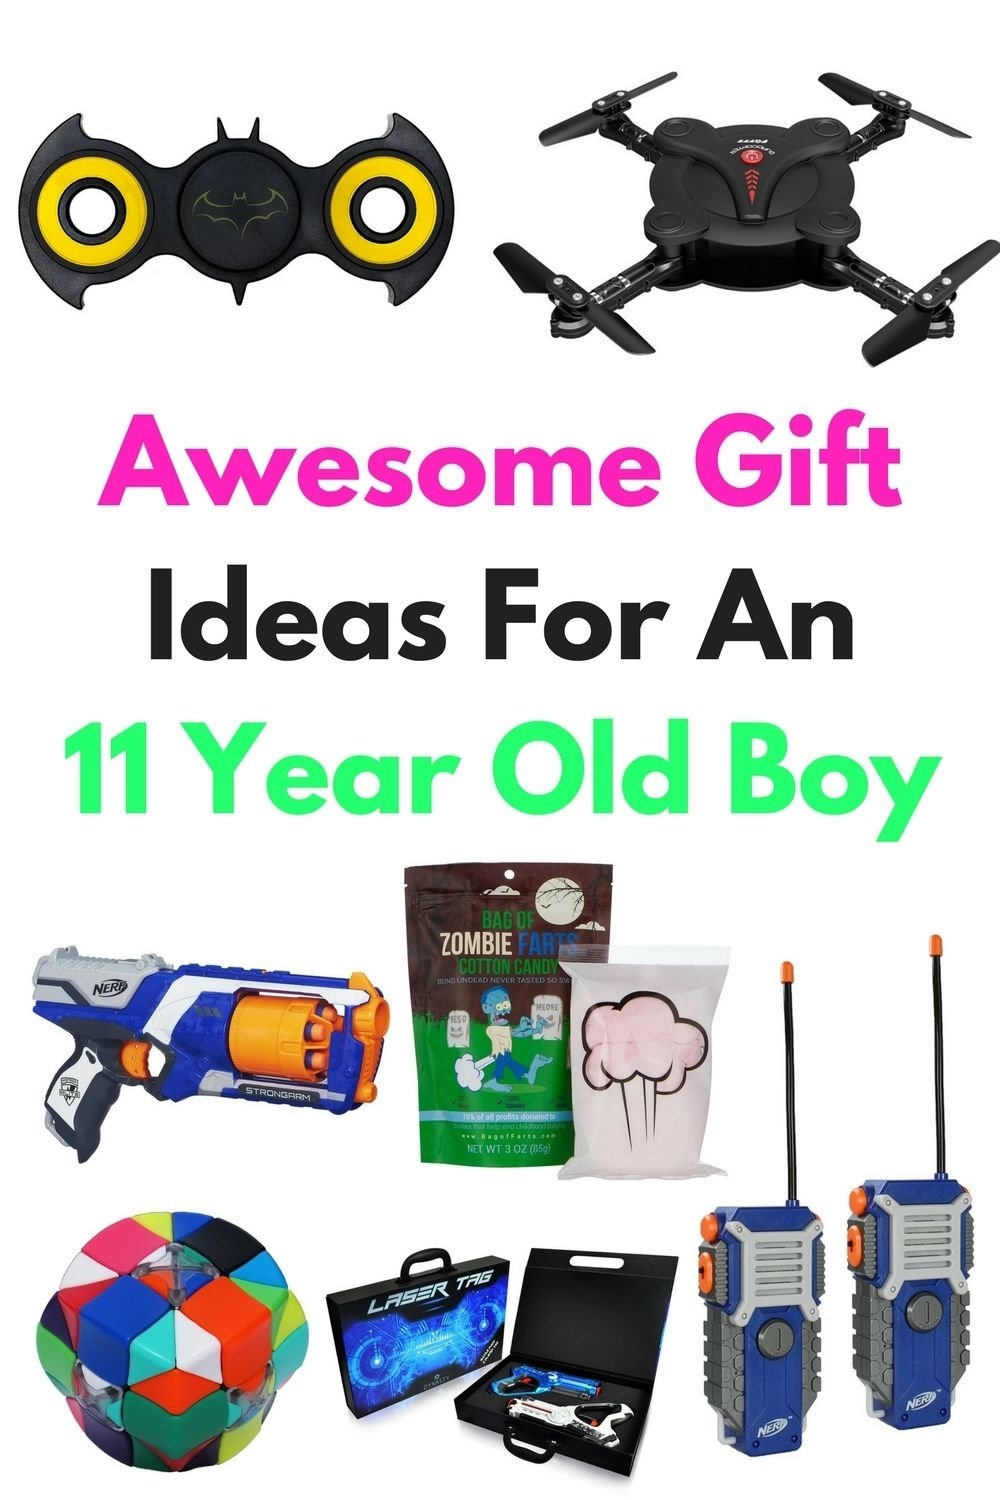 10 Wonderful Gift Ideas For A 12 Year Old Boy awesome gift ideas for an 11 year old boy awesome gifts easter 11